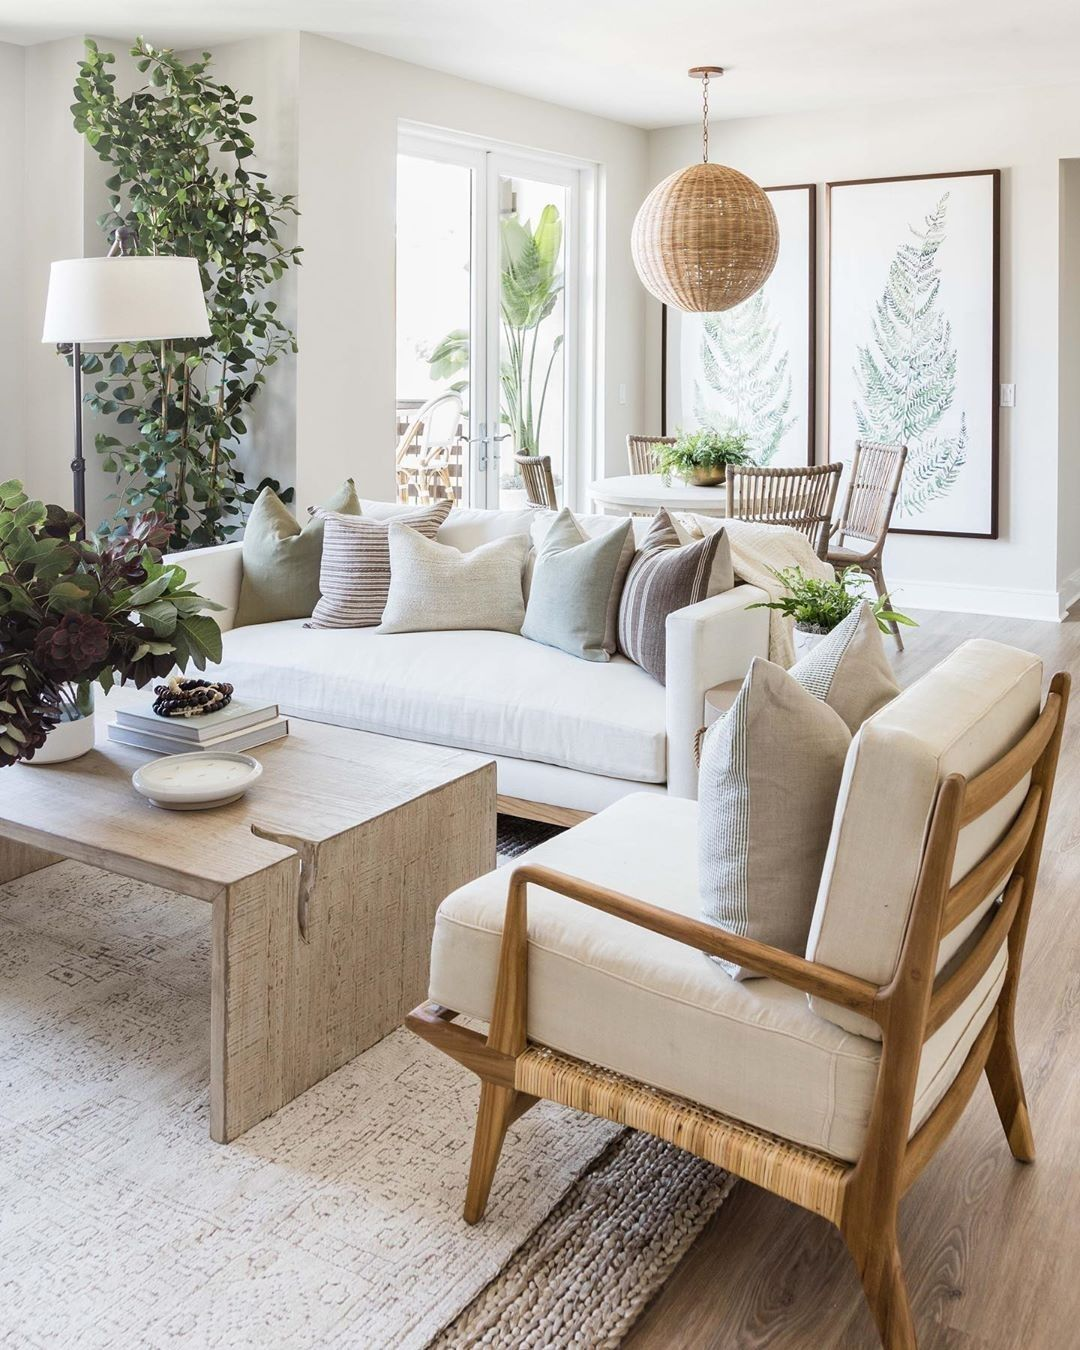 """DecorMatters on Instagram: """"White colors, wooden furniture, and greenery = the best trio 🌿🤩 (via @puresaltinteriors). • • • #interiorstyling #interior123 #houseandhome…"""""""